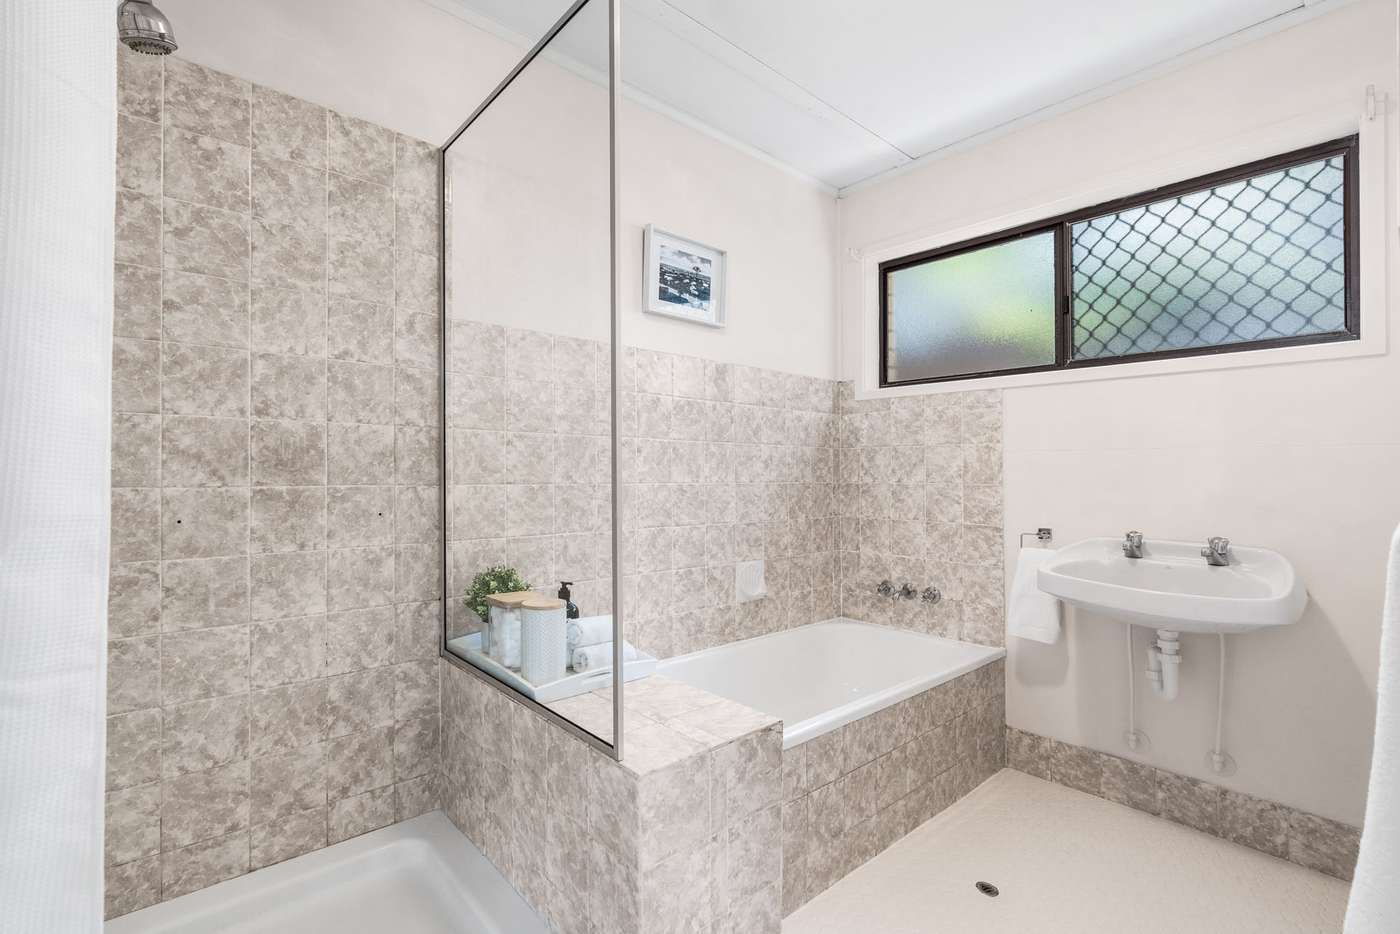 Sixth view of Homely house listing, 36 Blackwood Road, Manly West QLD 4179